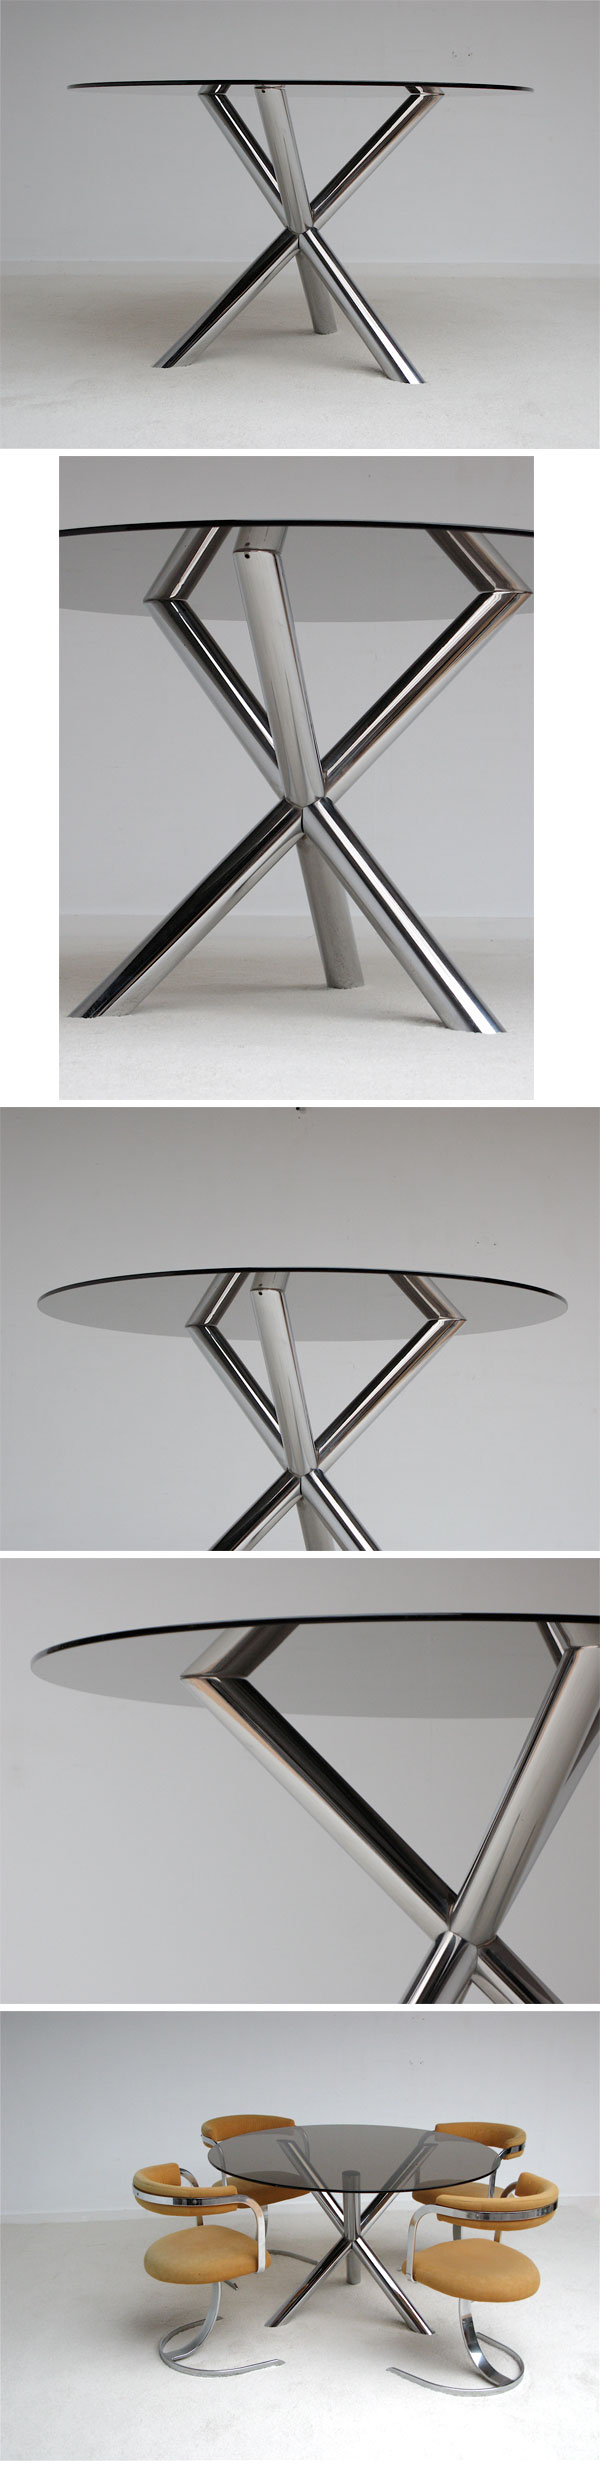 1970's, Modern, chromed, steel, dining, table, willy rizzo, cardin